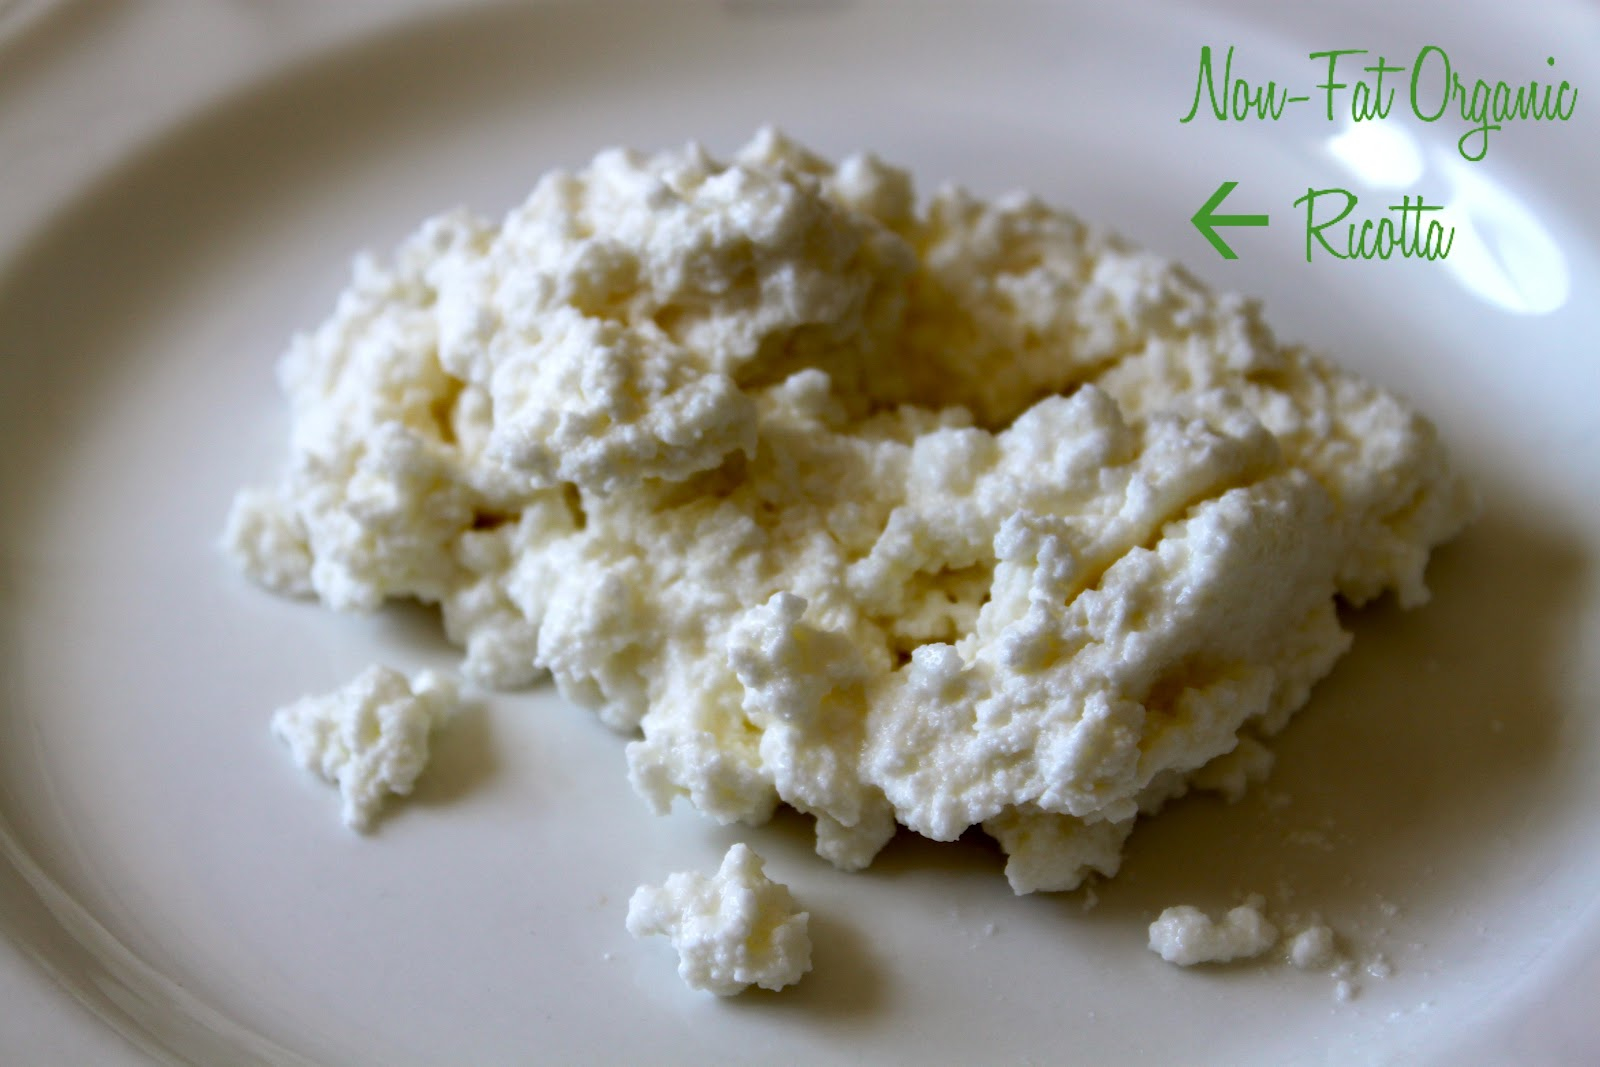 ... Ricotta in mashed potatoes...makes it nice and creamy without all the